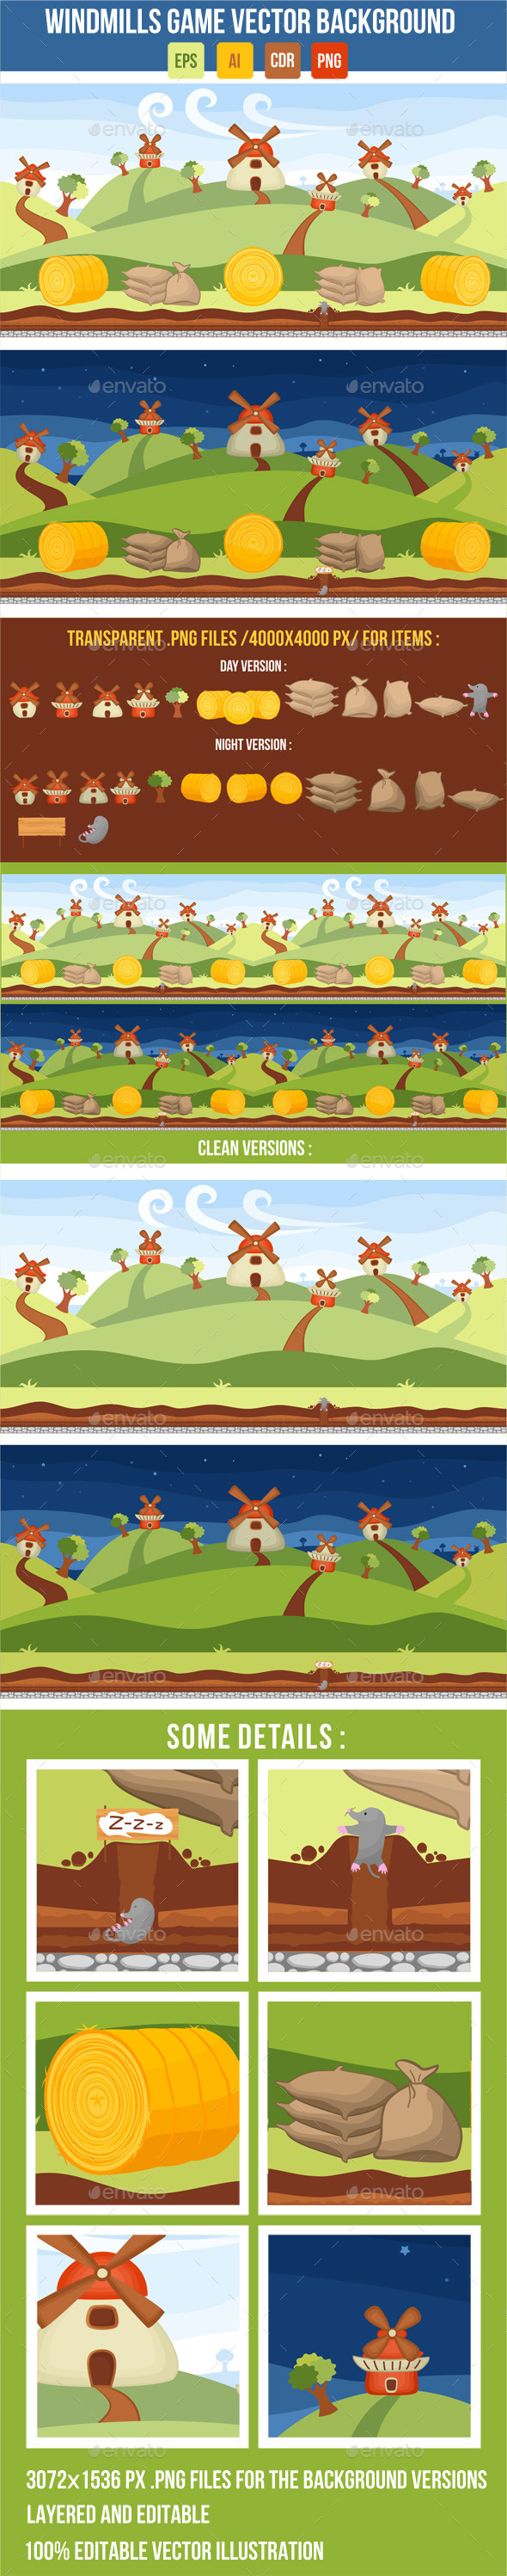 GraphicRiver Windmills Vector Game Background 8832973